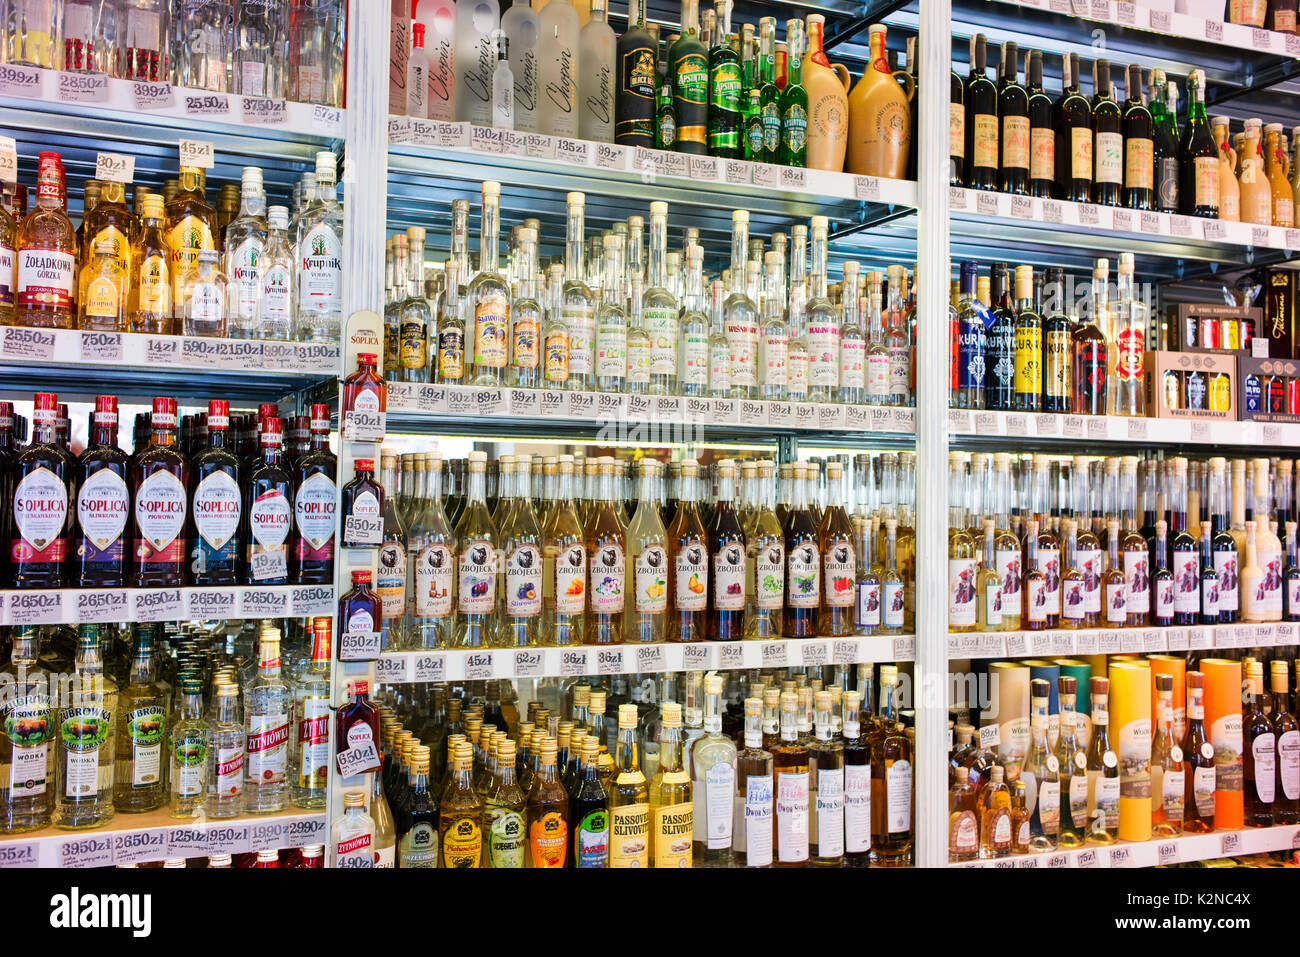 A wide variety of alcohol available at a bottle shop in central Krakow. - Stock Image